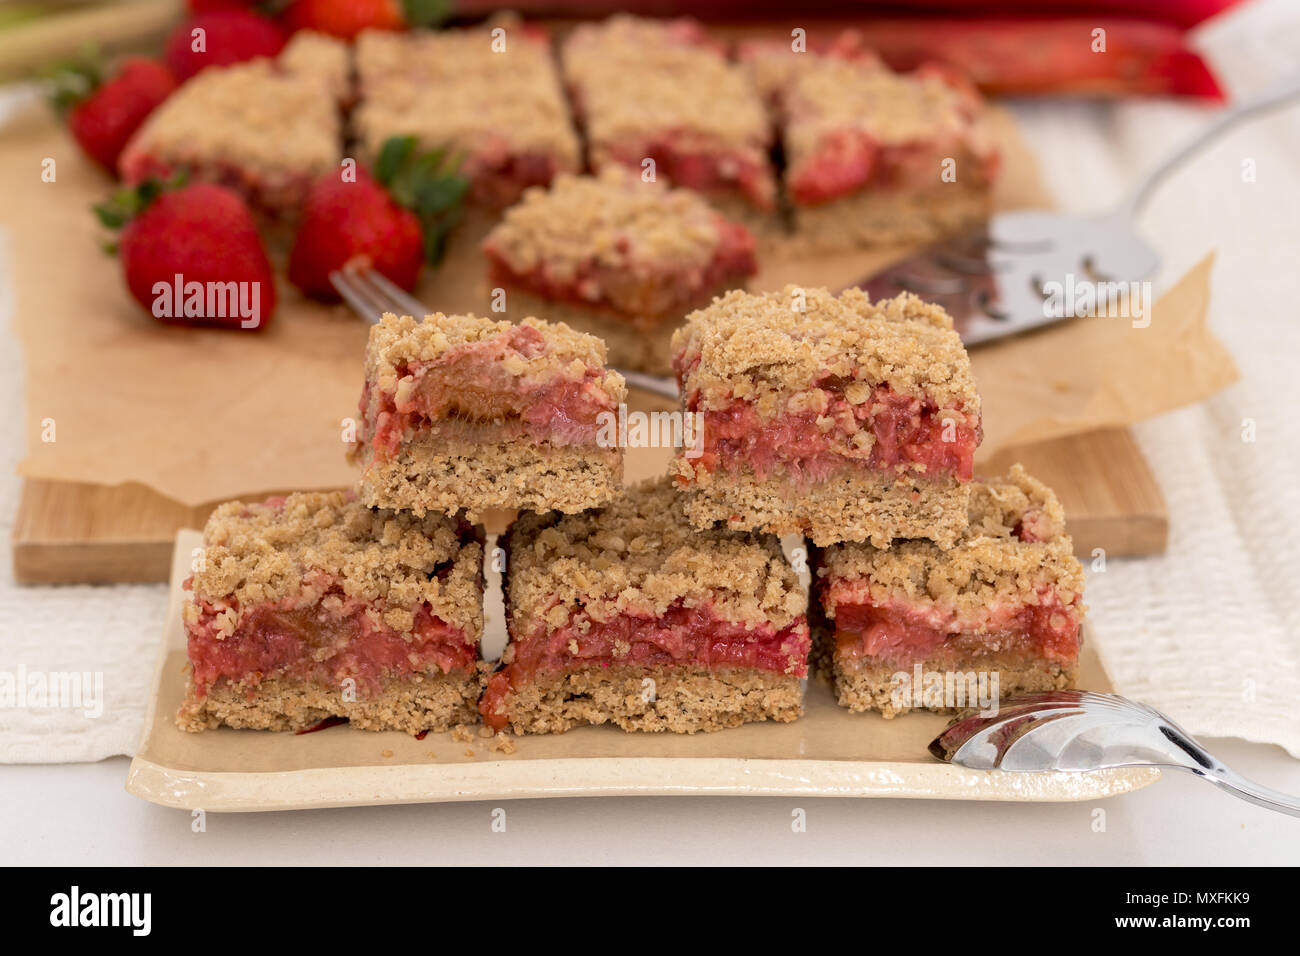 A healthy snack or dessert. Strawberry and rhubarb crumble bars stacked on a handmade ceramic plate, with a silver spoon. - Stock Image